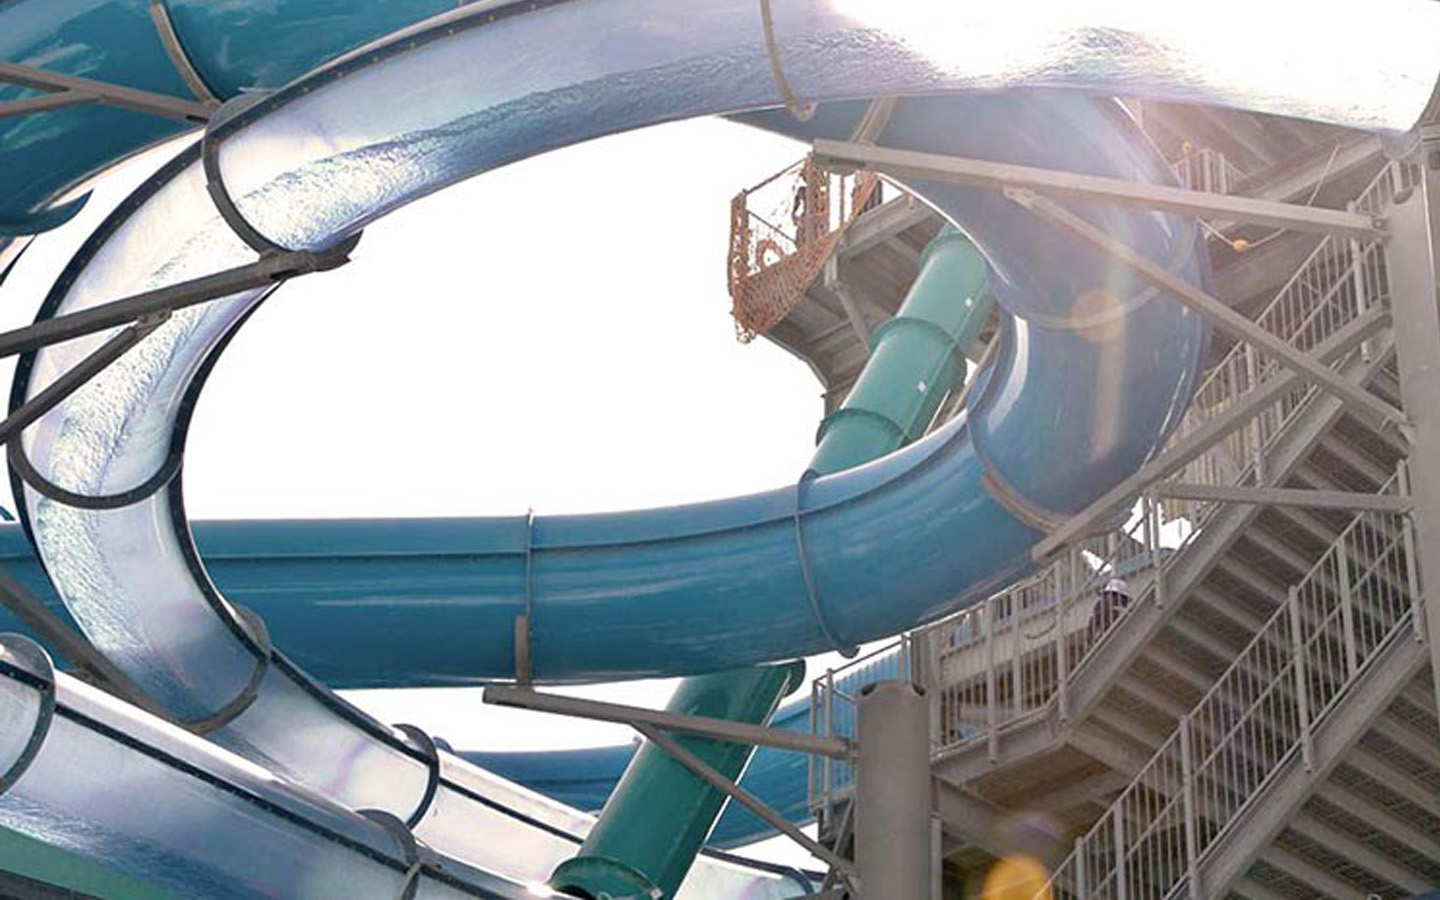 Mega tunnel and chute slides at Laguna Waterpark